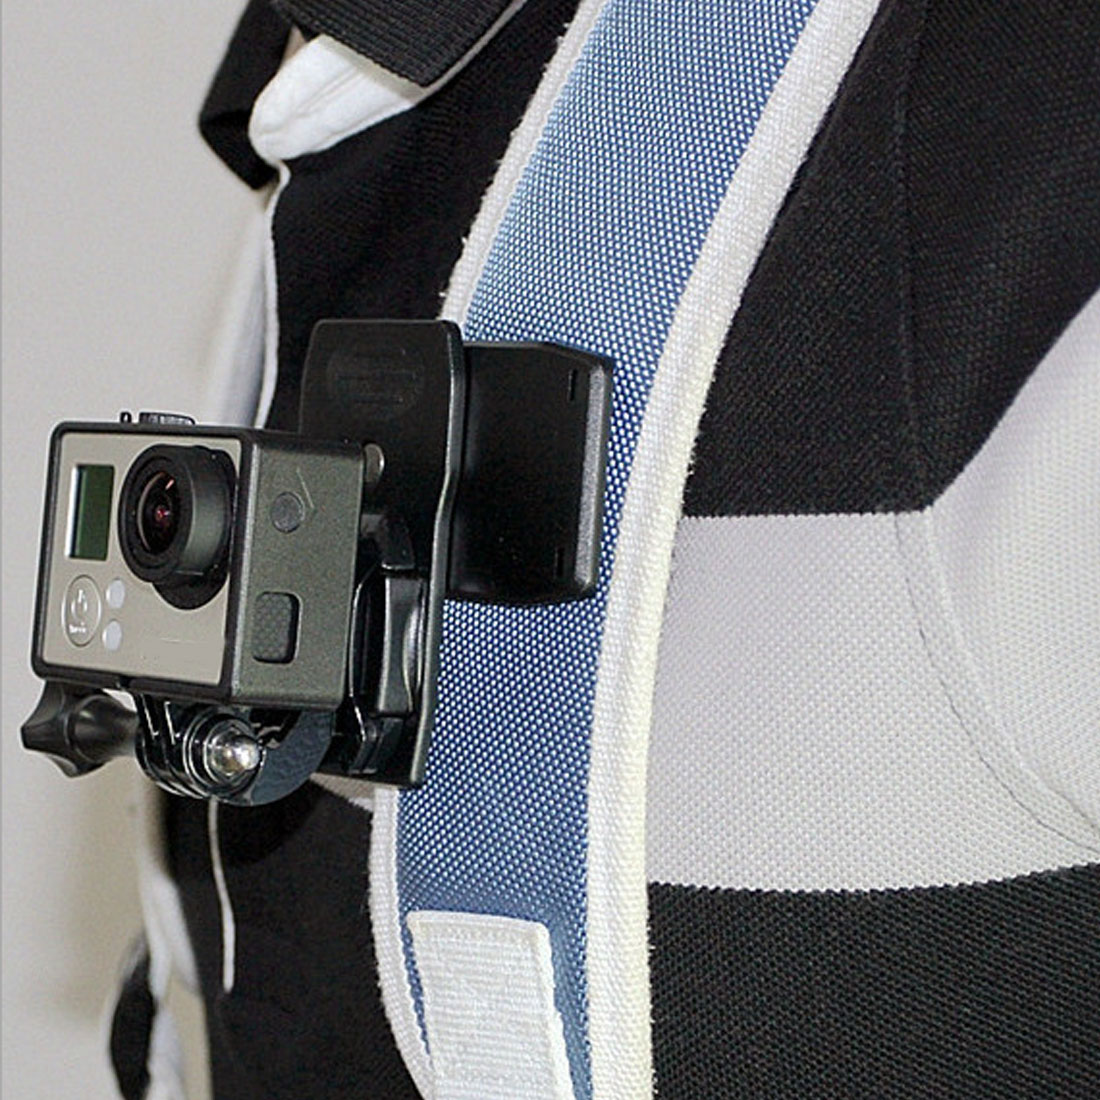 For GoPro Action Camera Accessories Satchel Belt Clip Stable 360-Degree Rotation Clip for Hero 5 4 3+ 3 2 1/Xiaomi /SJCAM SJ4000